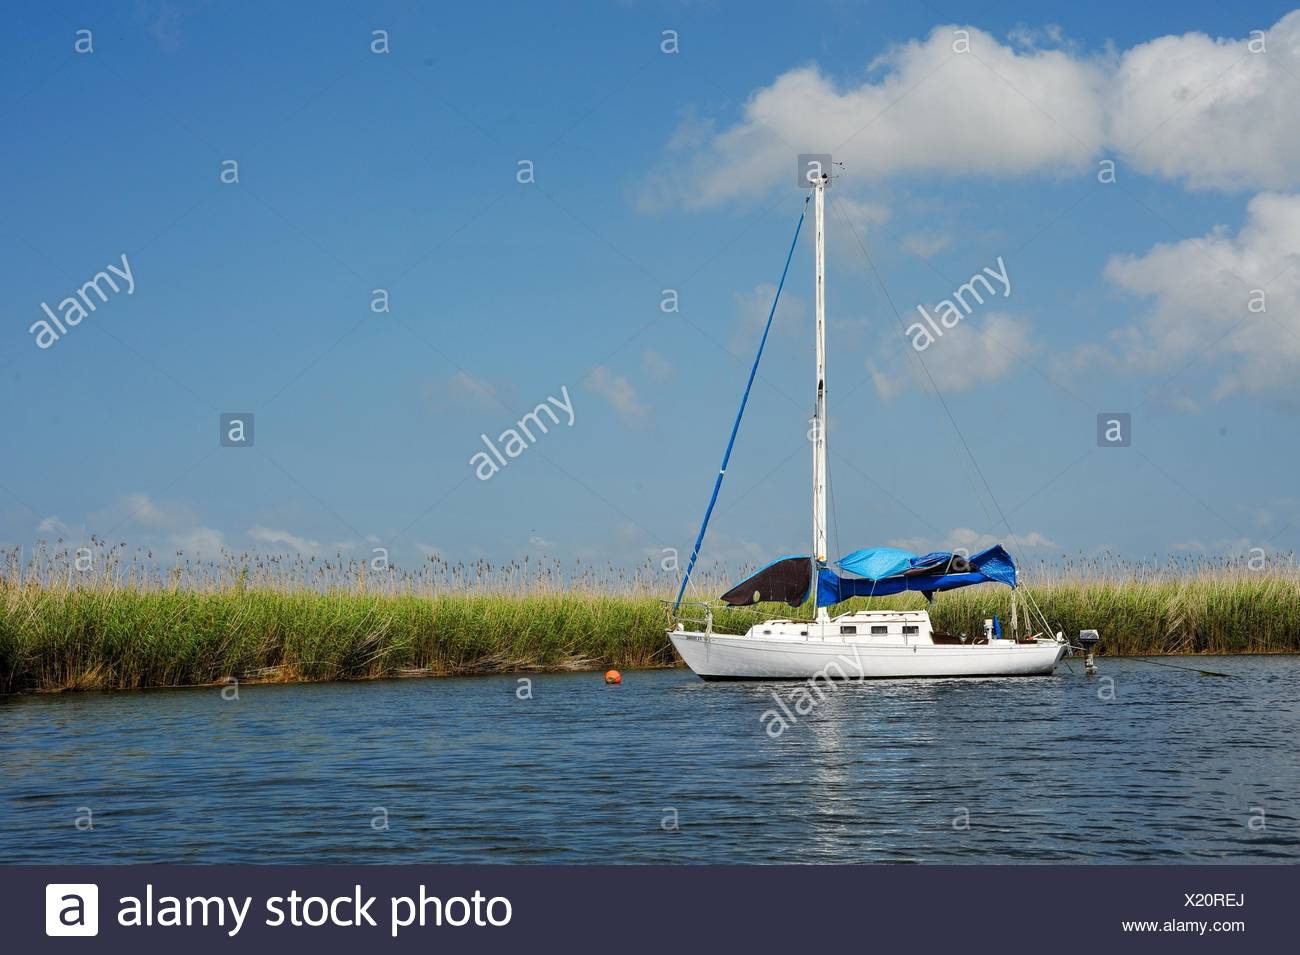 Sailboat in Apalachicola Bay in Franklin County Florida USA - Stock Image